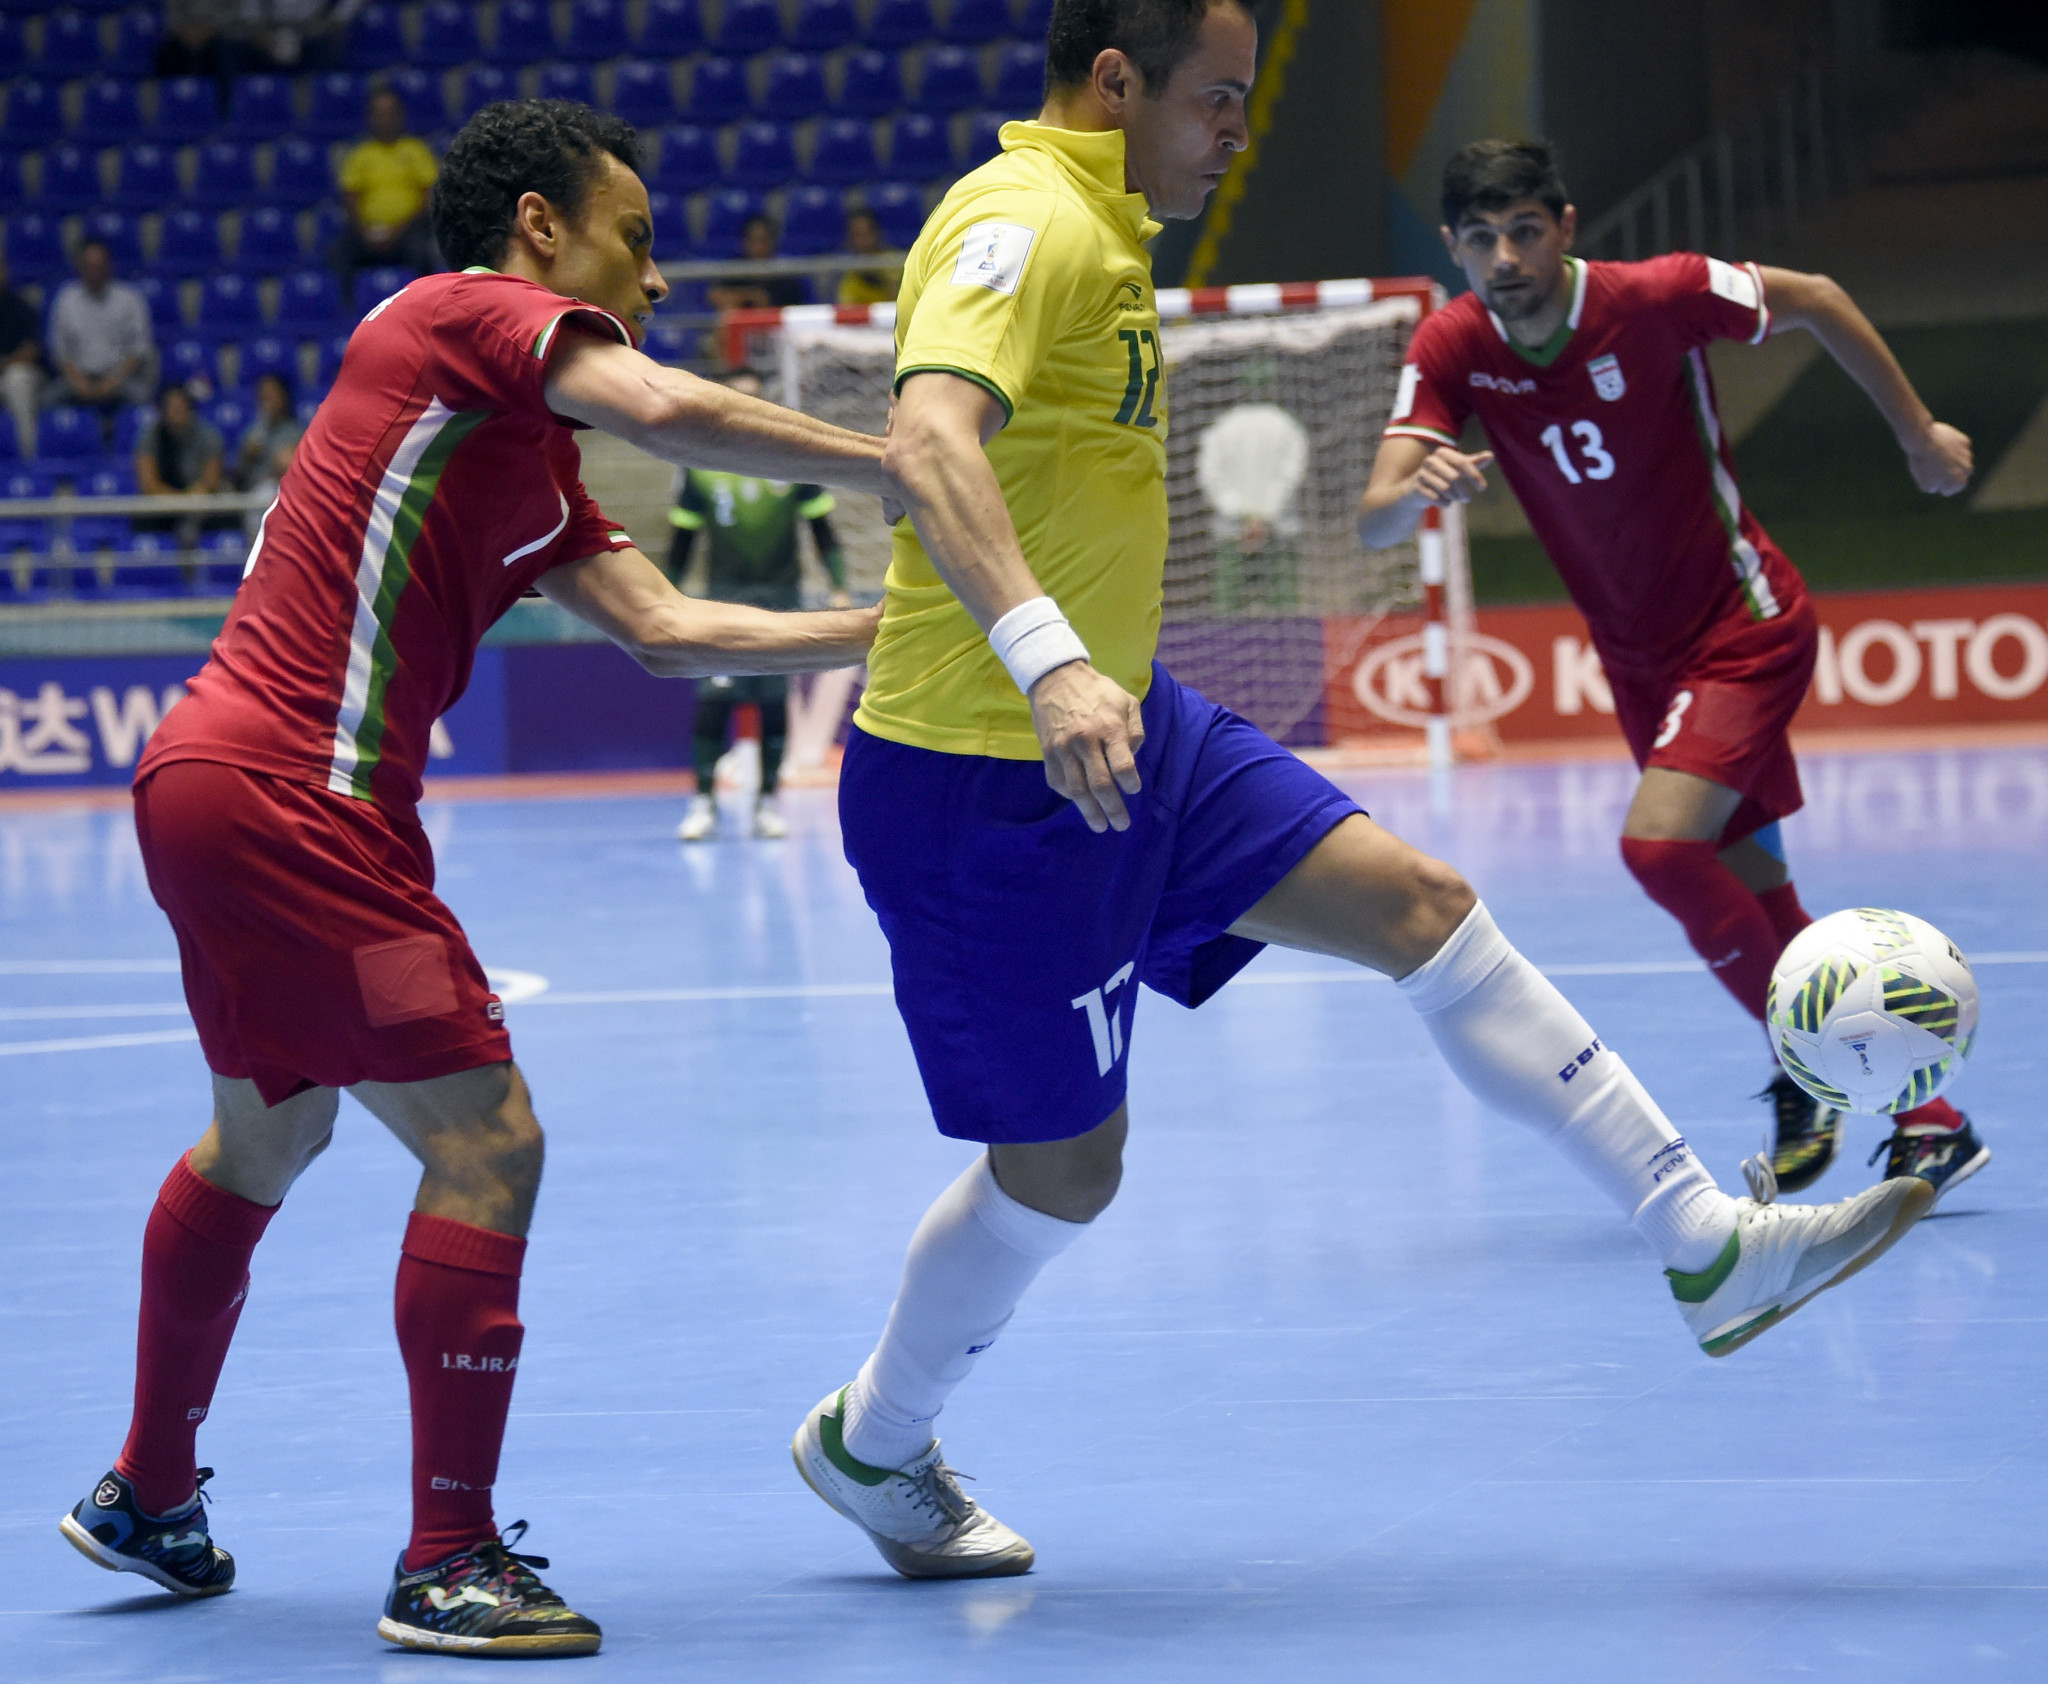 Brazil are five-time winners of the FIFA Futsal World Cup, but lost to Iran in the round of 16 last time out, with their opponents going on to finish third ©Getty Images